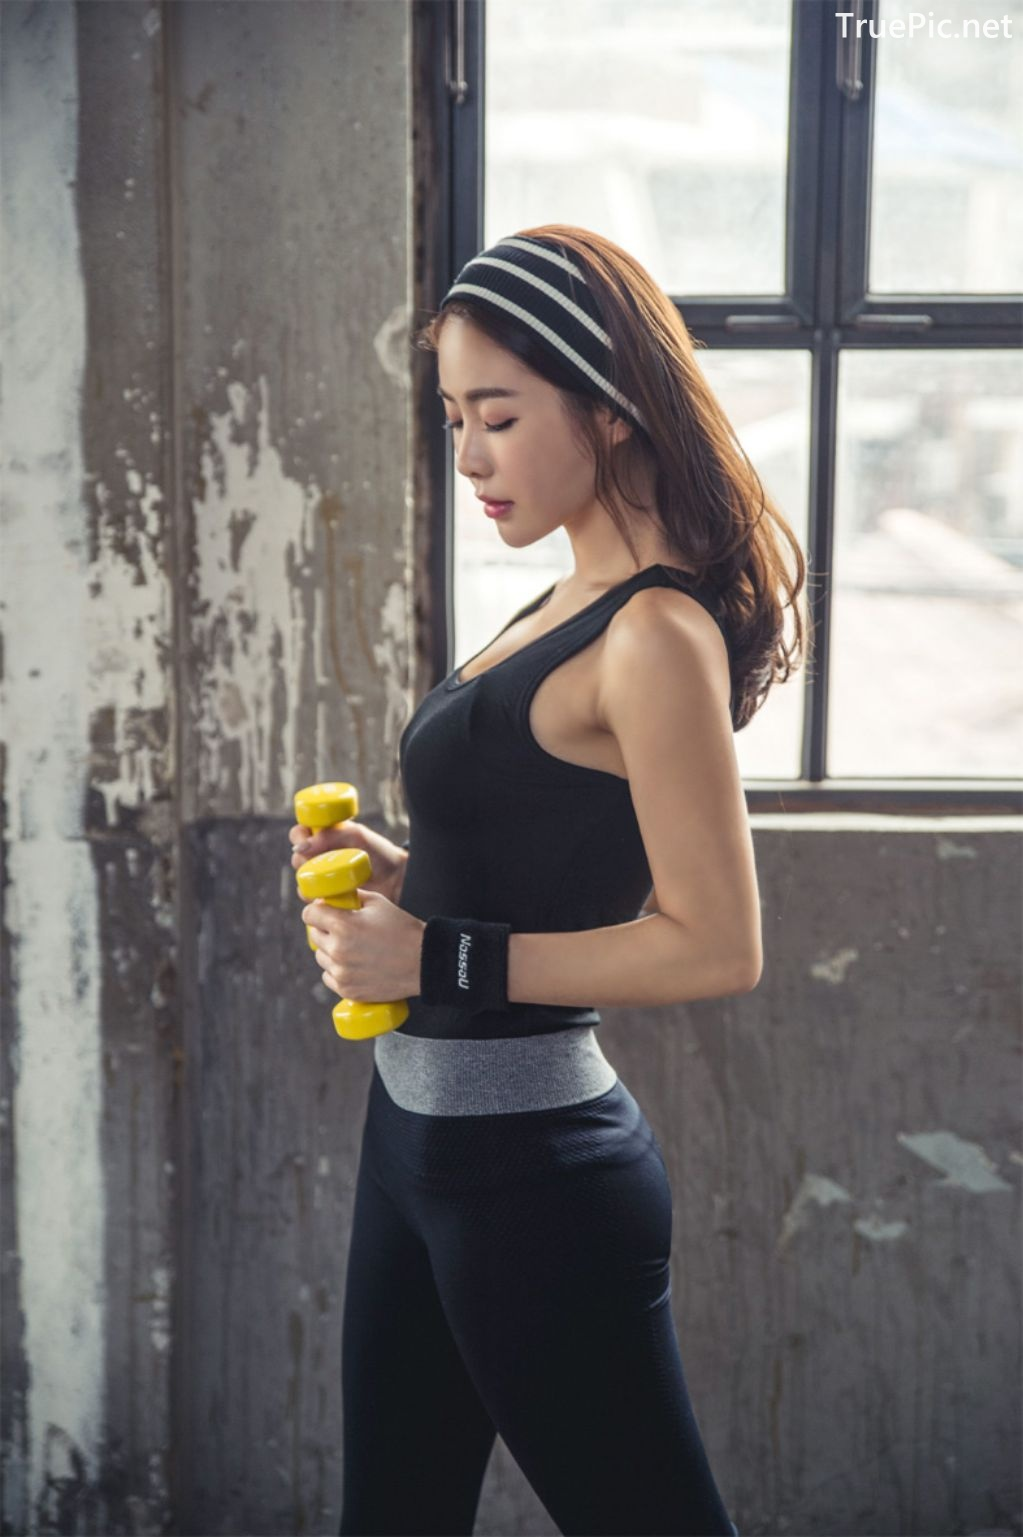 Image Korean Beautiful Model - An Seo Rin - Fitness Fashion Photography - TruePic.net - Picture-5